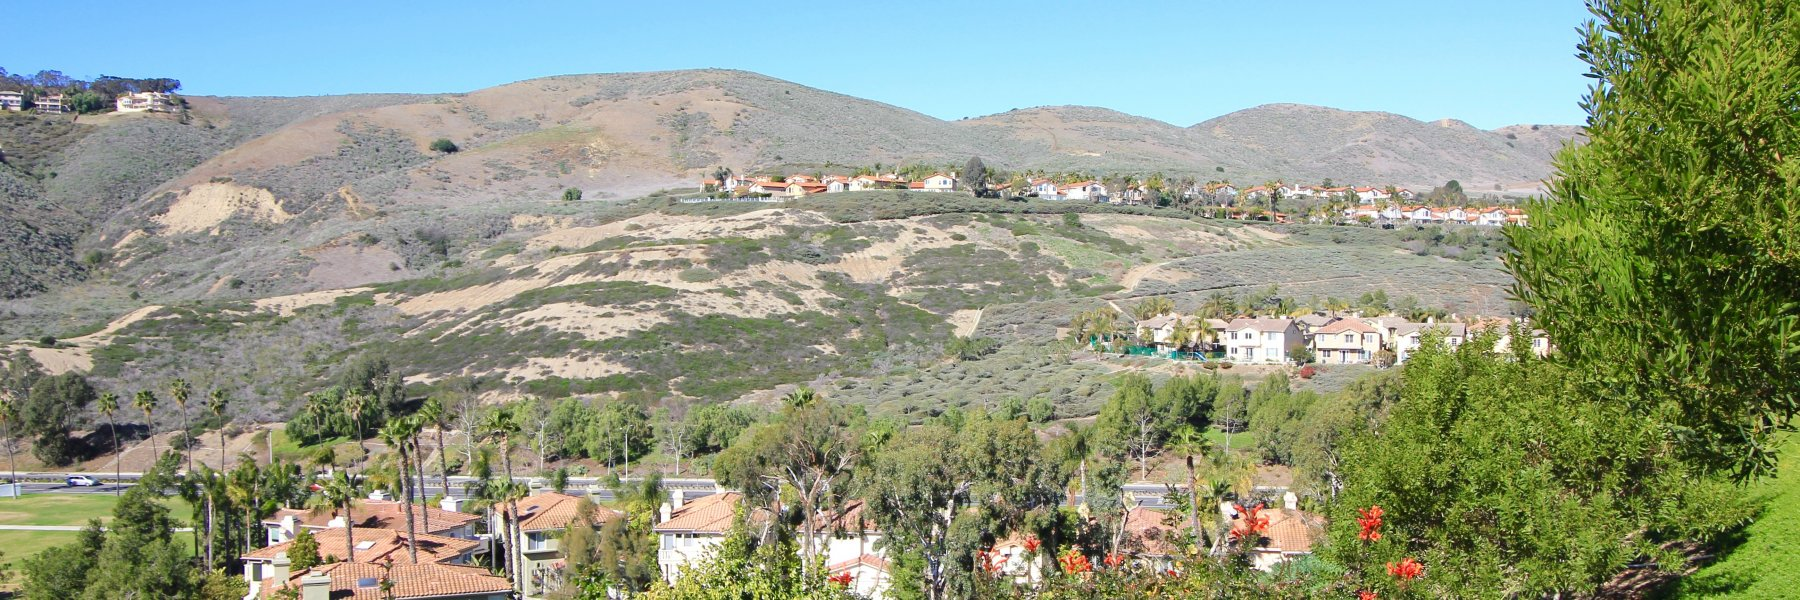 Forster Ranch is a neighborhood of homes in San Clemente Ca